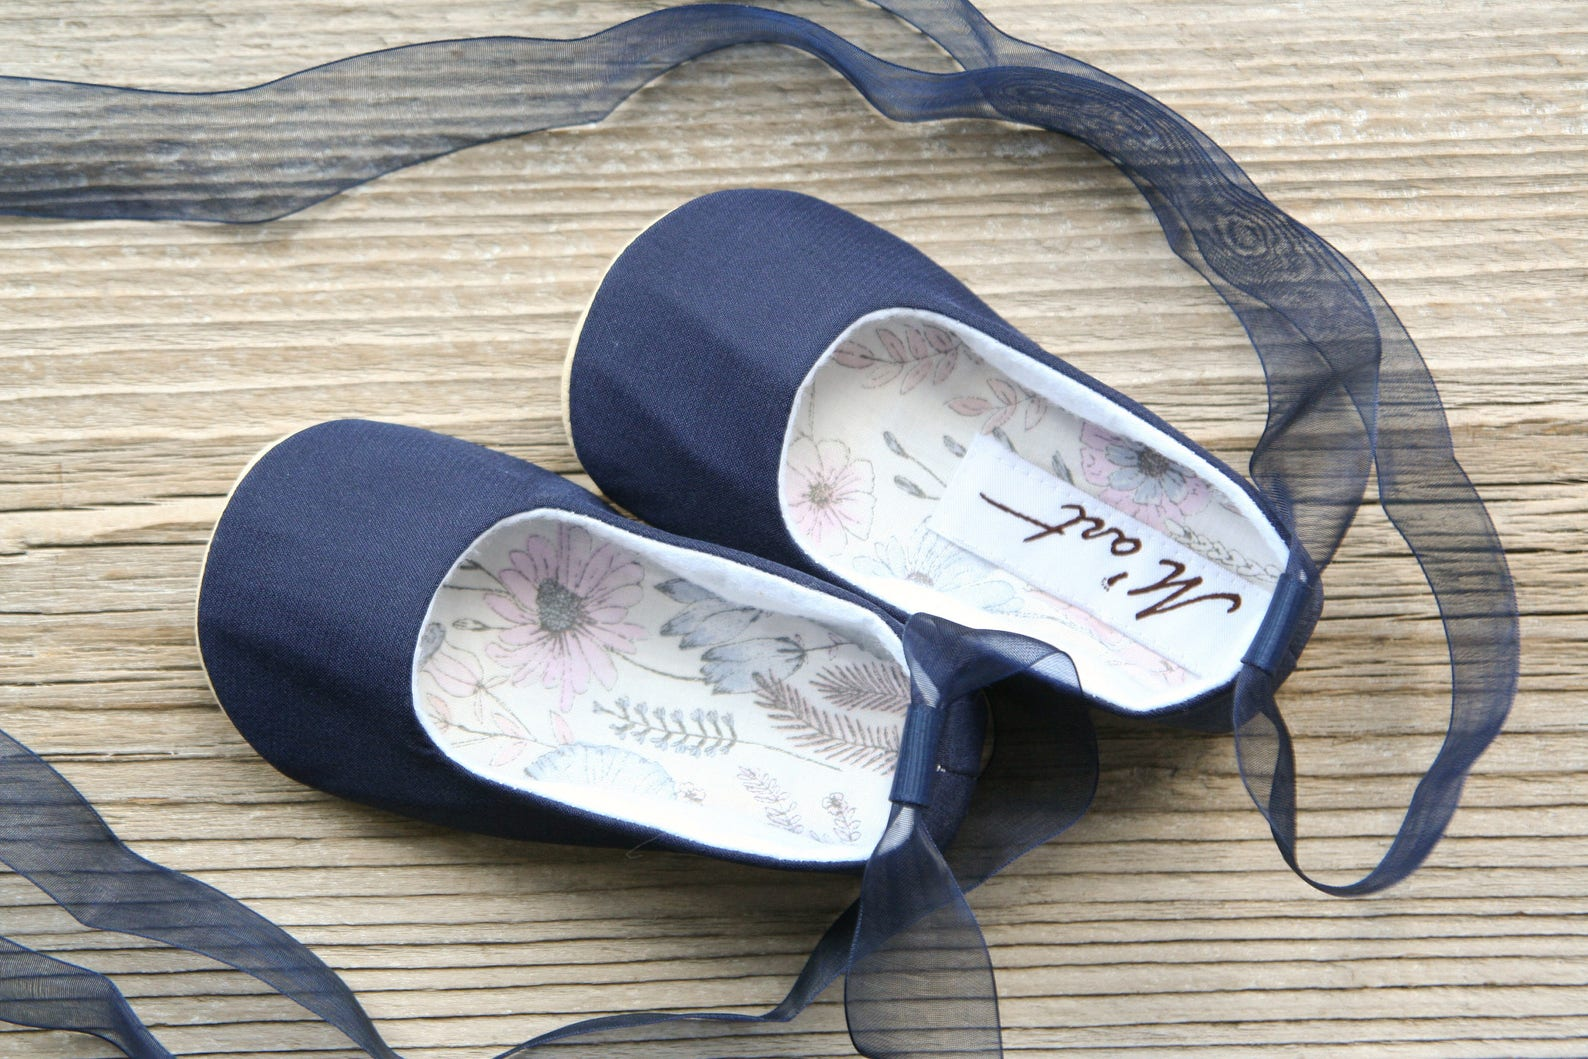 navy baby ballet shoes, blue baby ballerina shoes, baby christening shoes, baptism shoes, wedding baby outfit, baby slippers